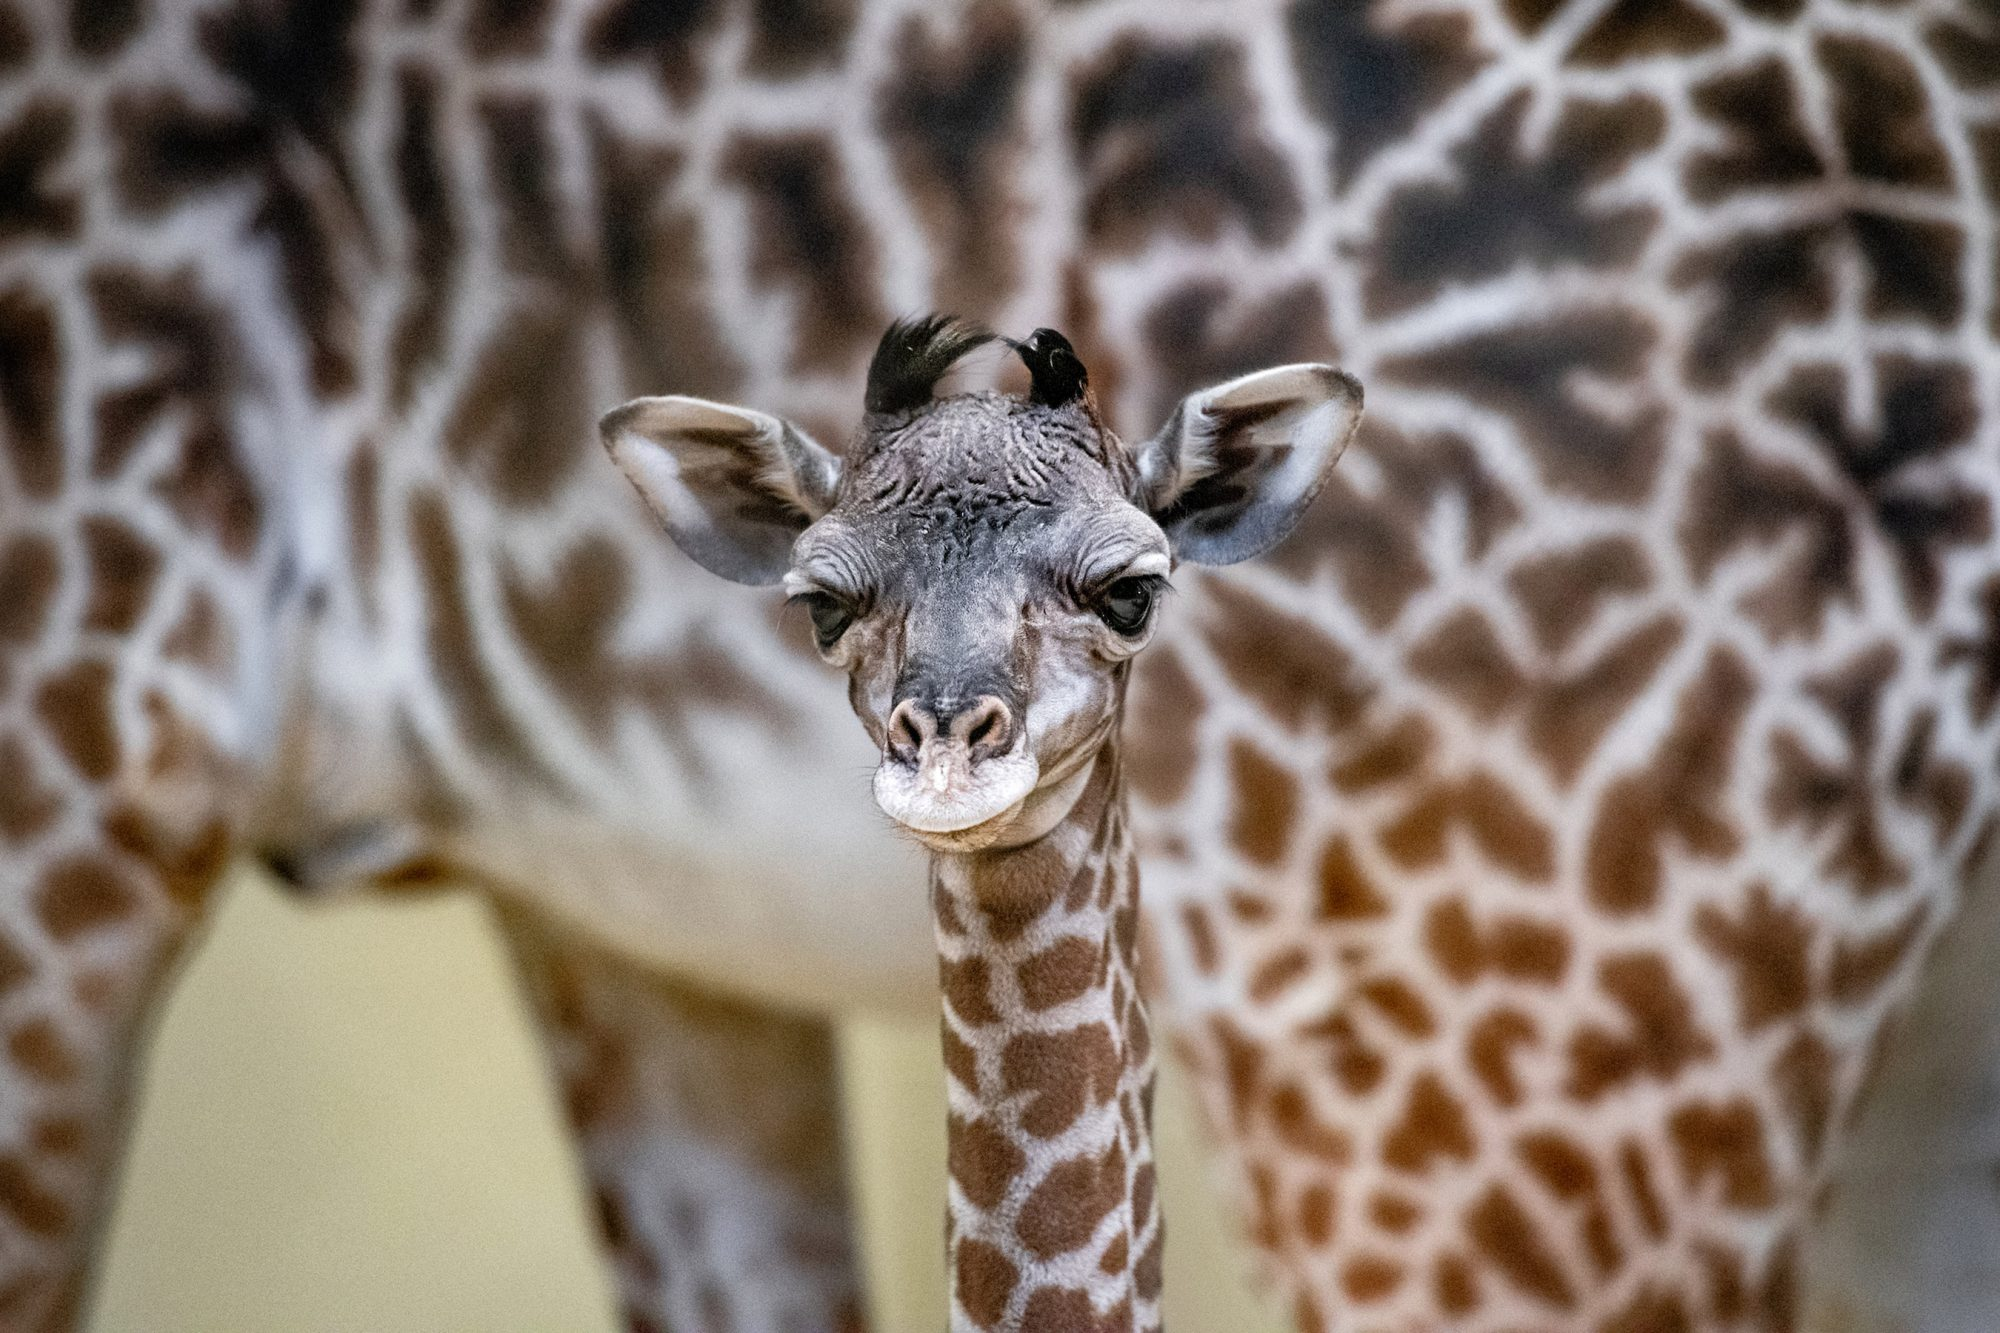 Baby Giraffe at Cleveland Metroparks Zoo on April 24, 2019.